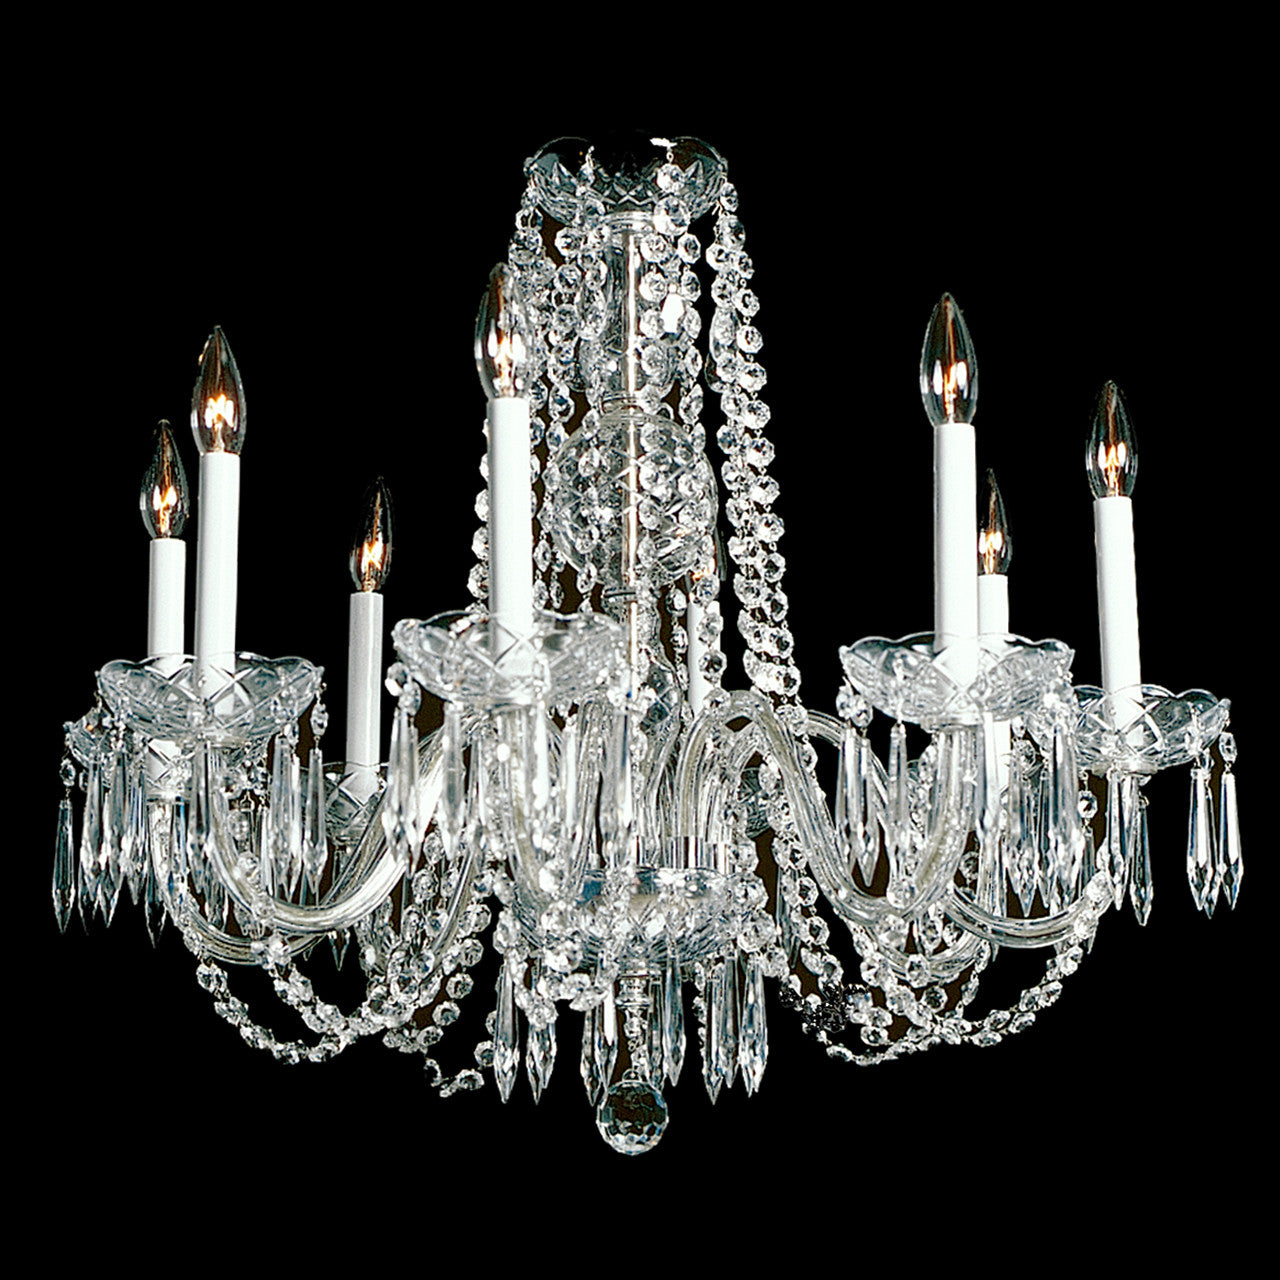 Princess 8 light crystal chandelier 28 wide x 23 long kings crystal chandelier princess princess chandelier crystal chandelier shown in nickel finish note the clear wire in the arms arubaitofo Choice Image